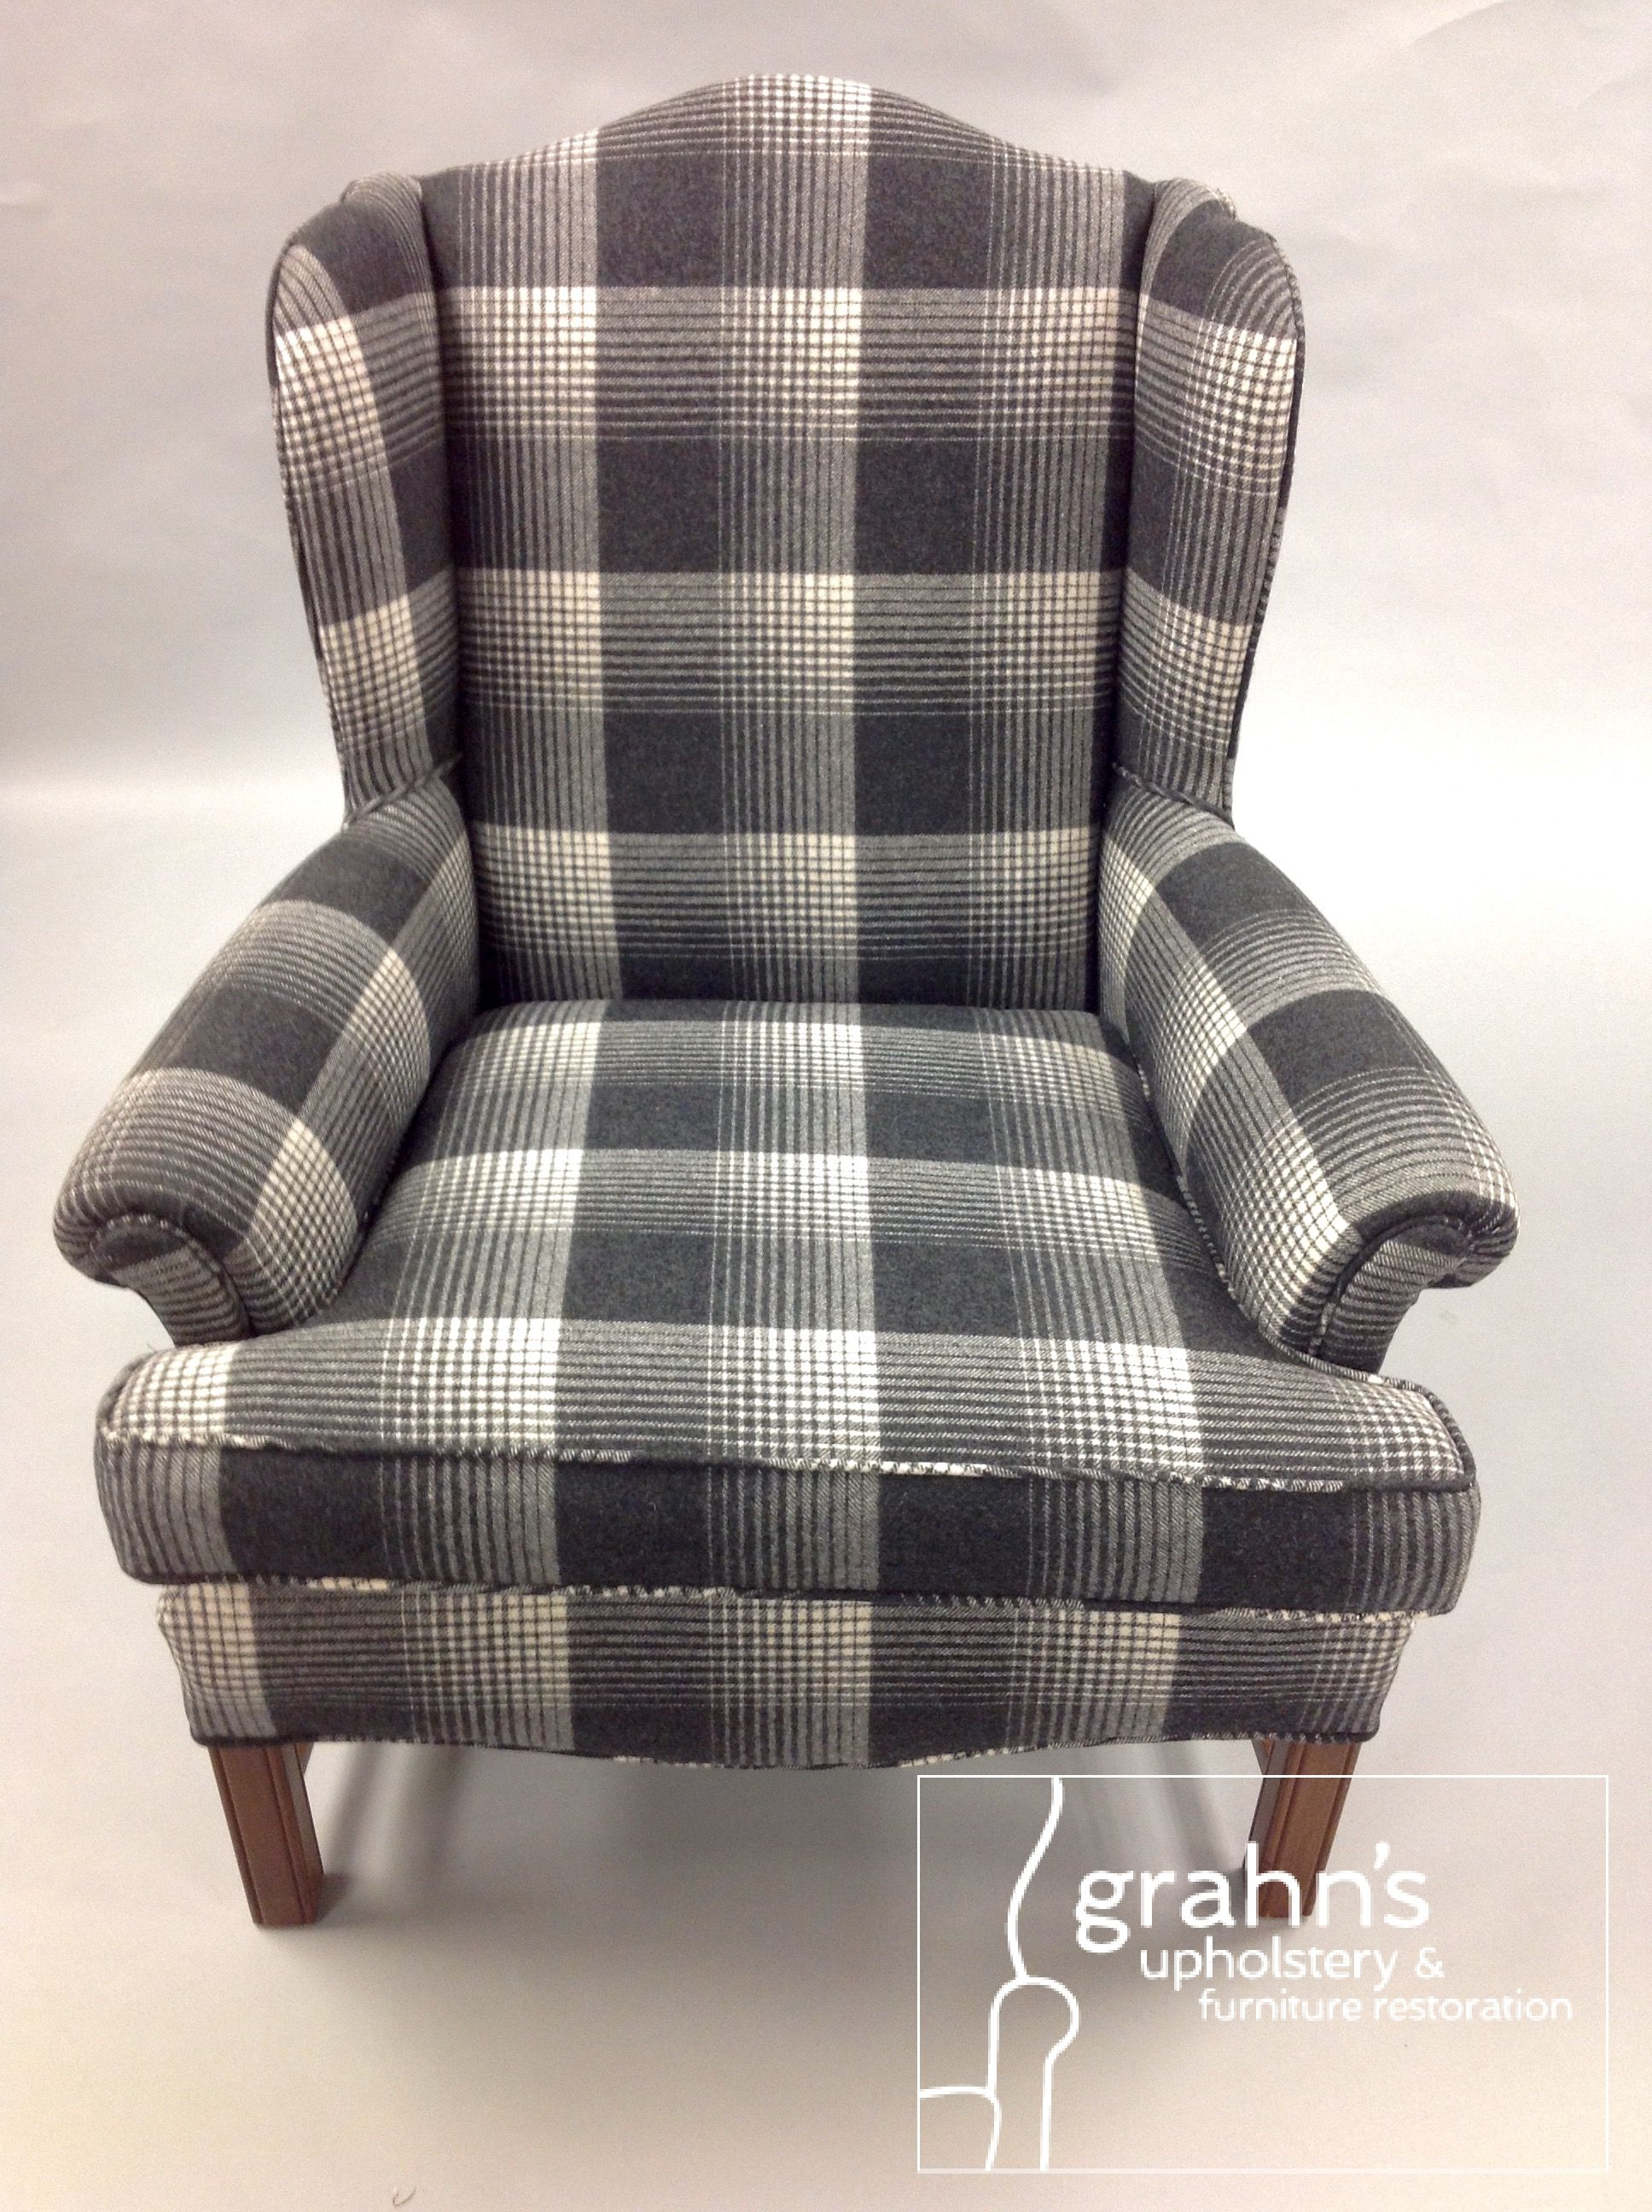 Newly Upholstered In A Pindler Plaid.